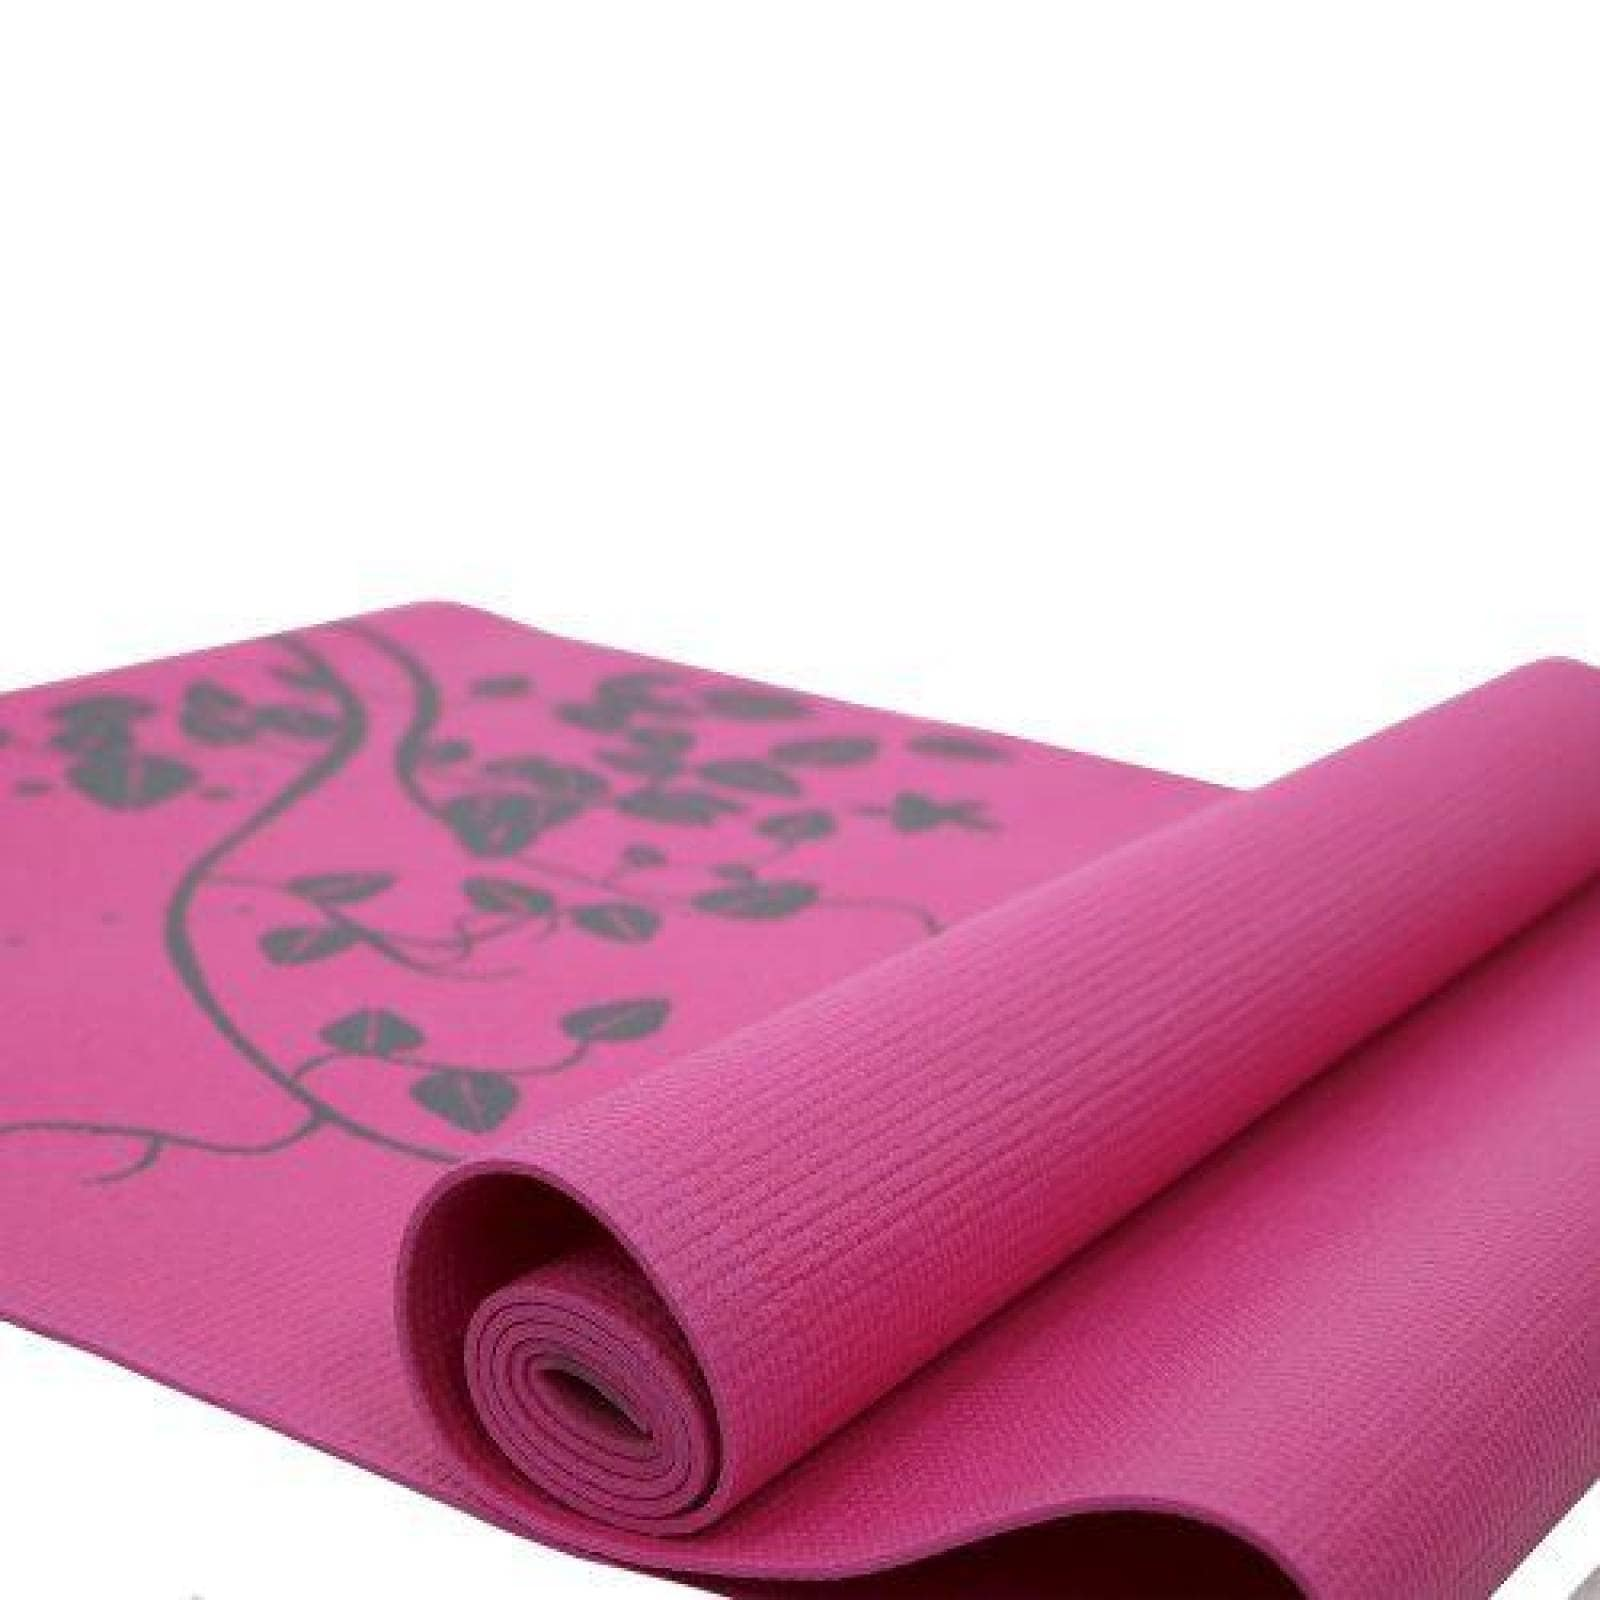 12 Tapetes Antiderrapante 3mm Yoga Pilates Varios Colores